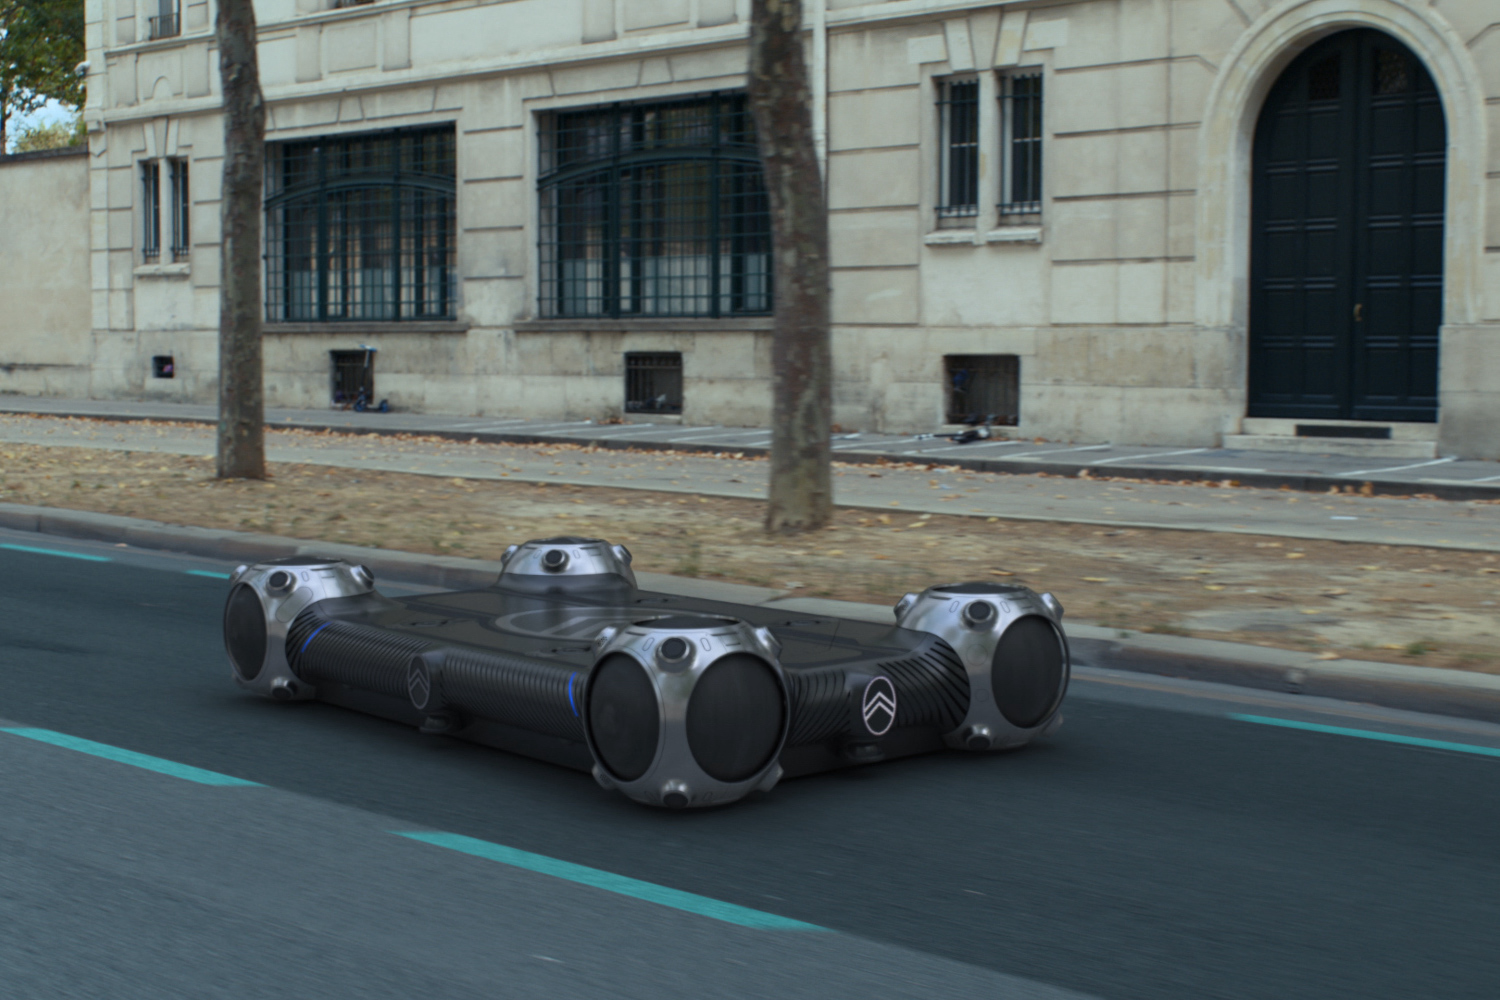 Car News | Citroen's skateboard could revolutionise urban mobility | CompleteCar.ie